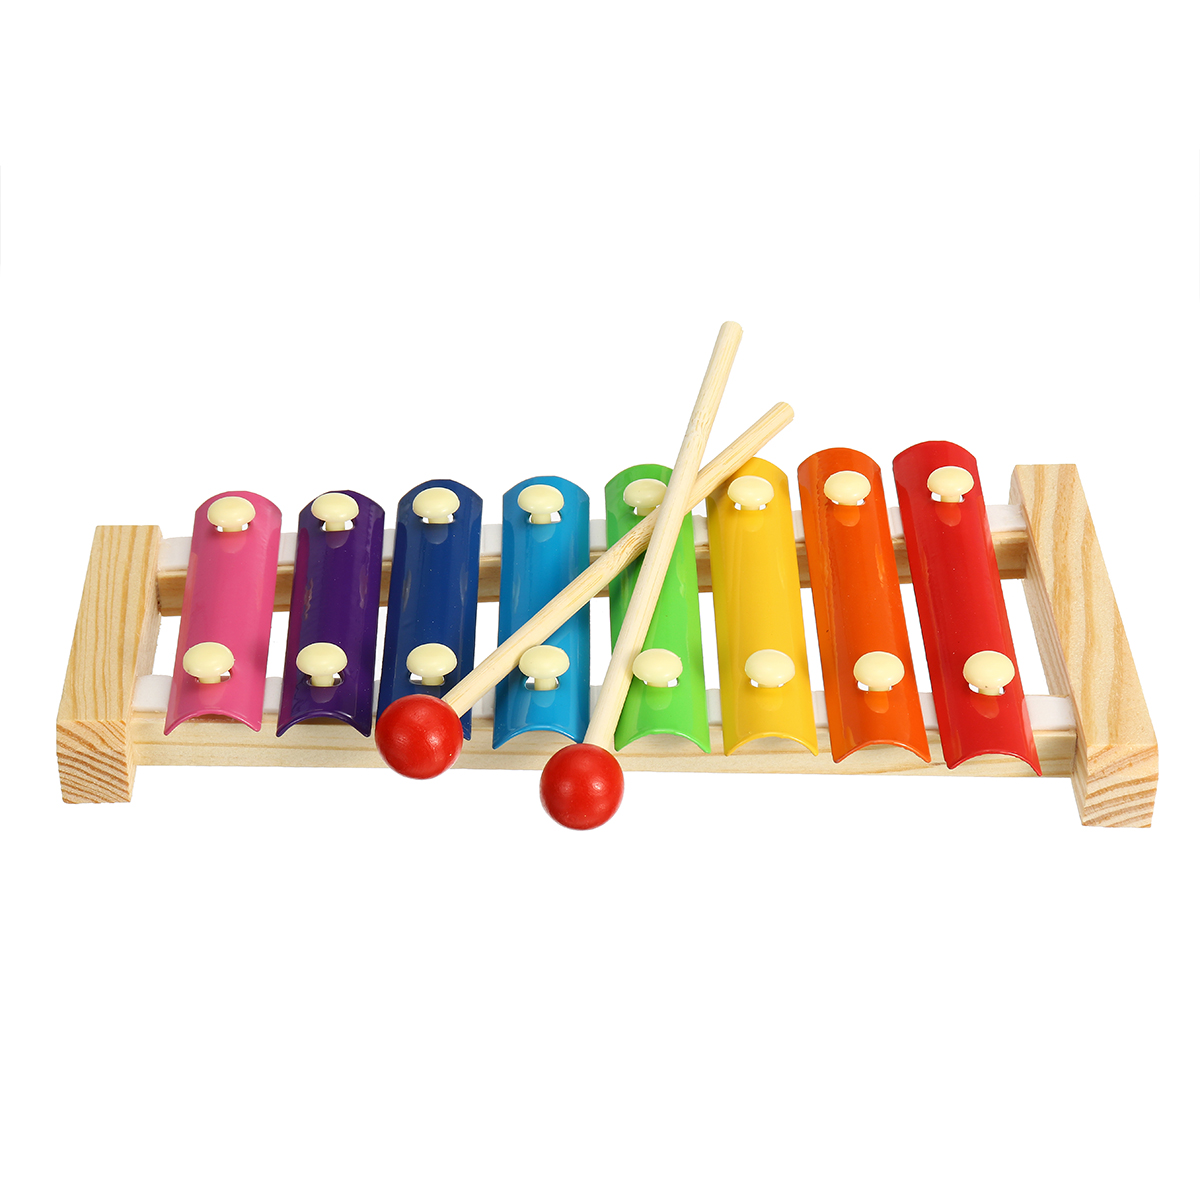 7 Pieces Orff Musical Instruments Set Kids Puzzle Percussion for Children's Sensing Practice - Photo: 7